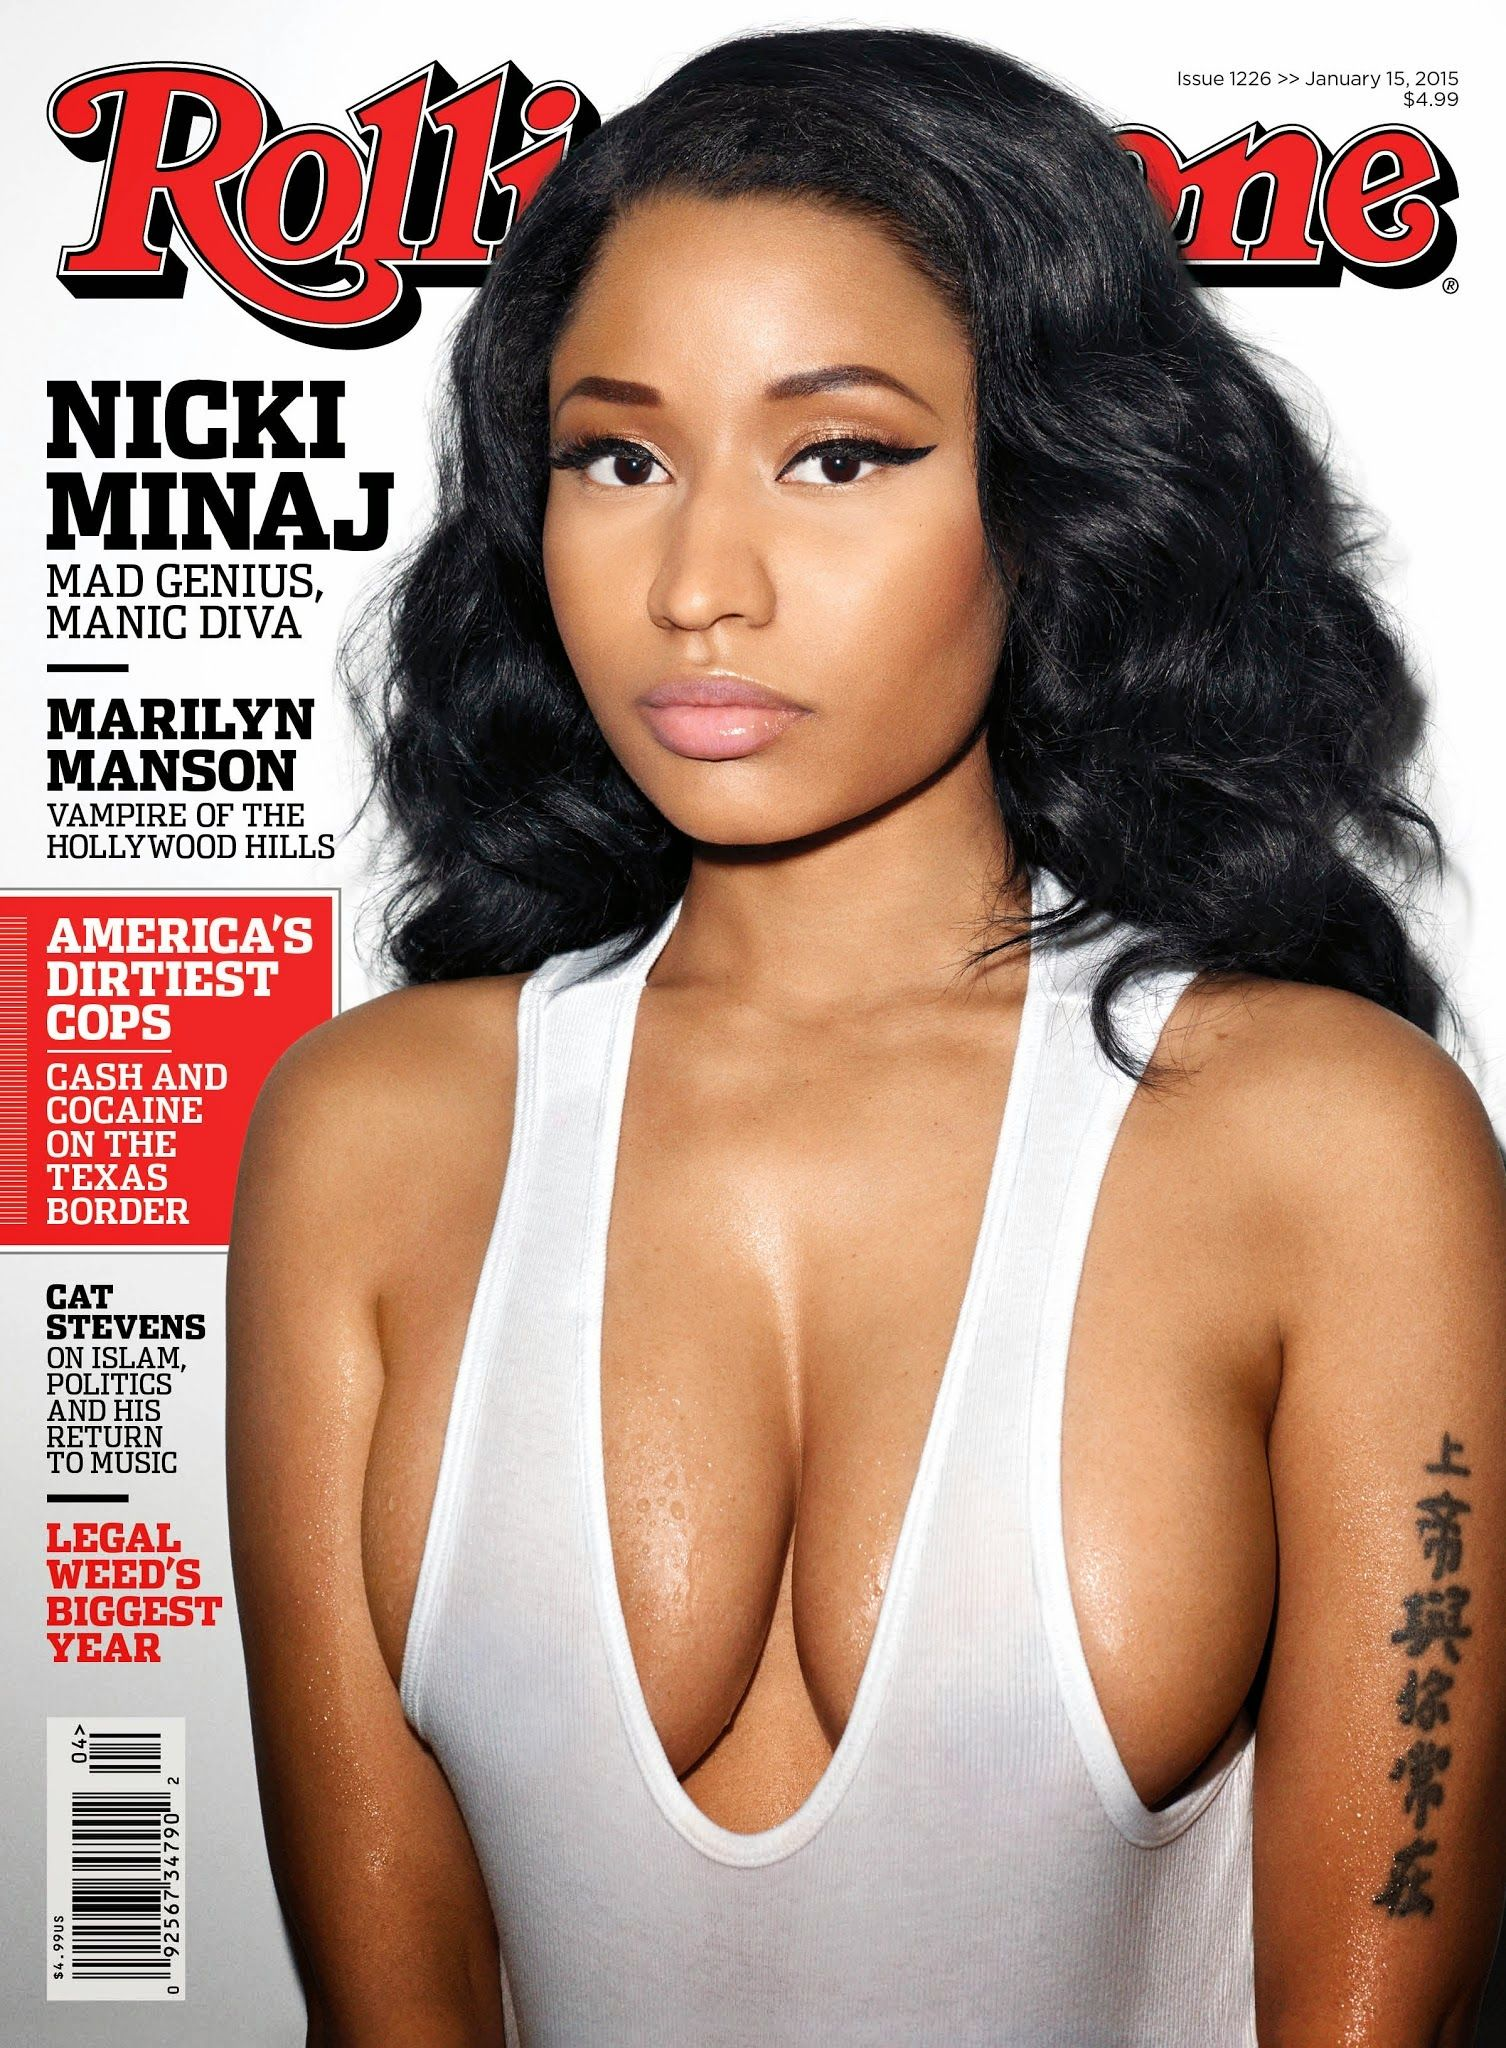 Hacked Nikki Minaj nudes (38 photo), Topless, Bikini, Selfie, butt 2020